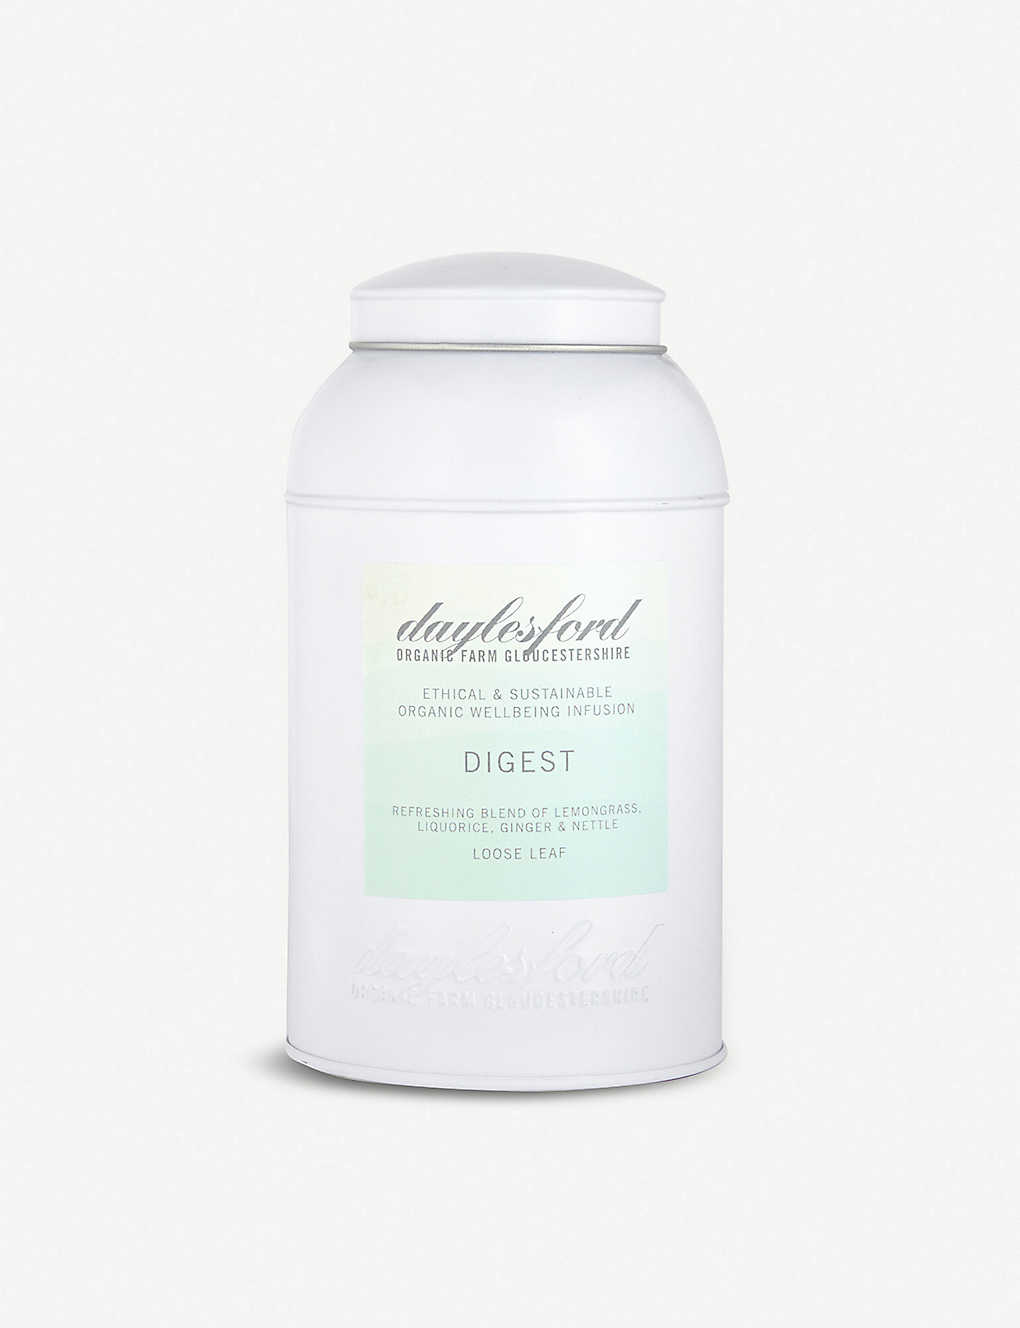 DAYLESFORD: Digest loose leaf tea 140g